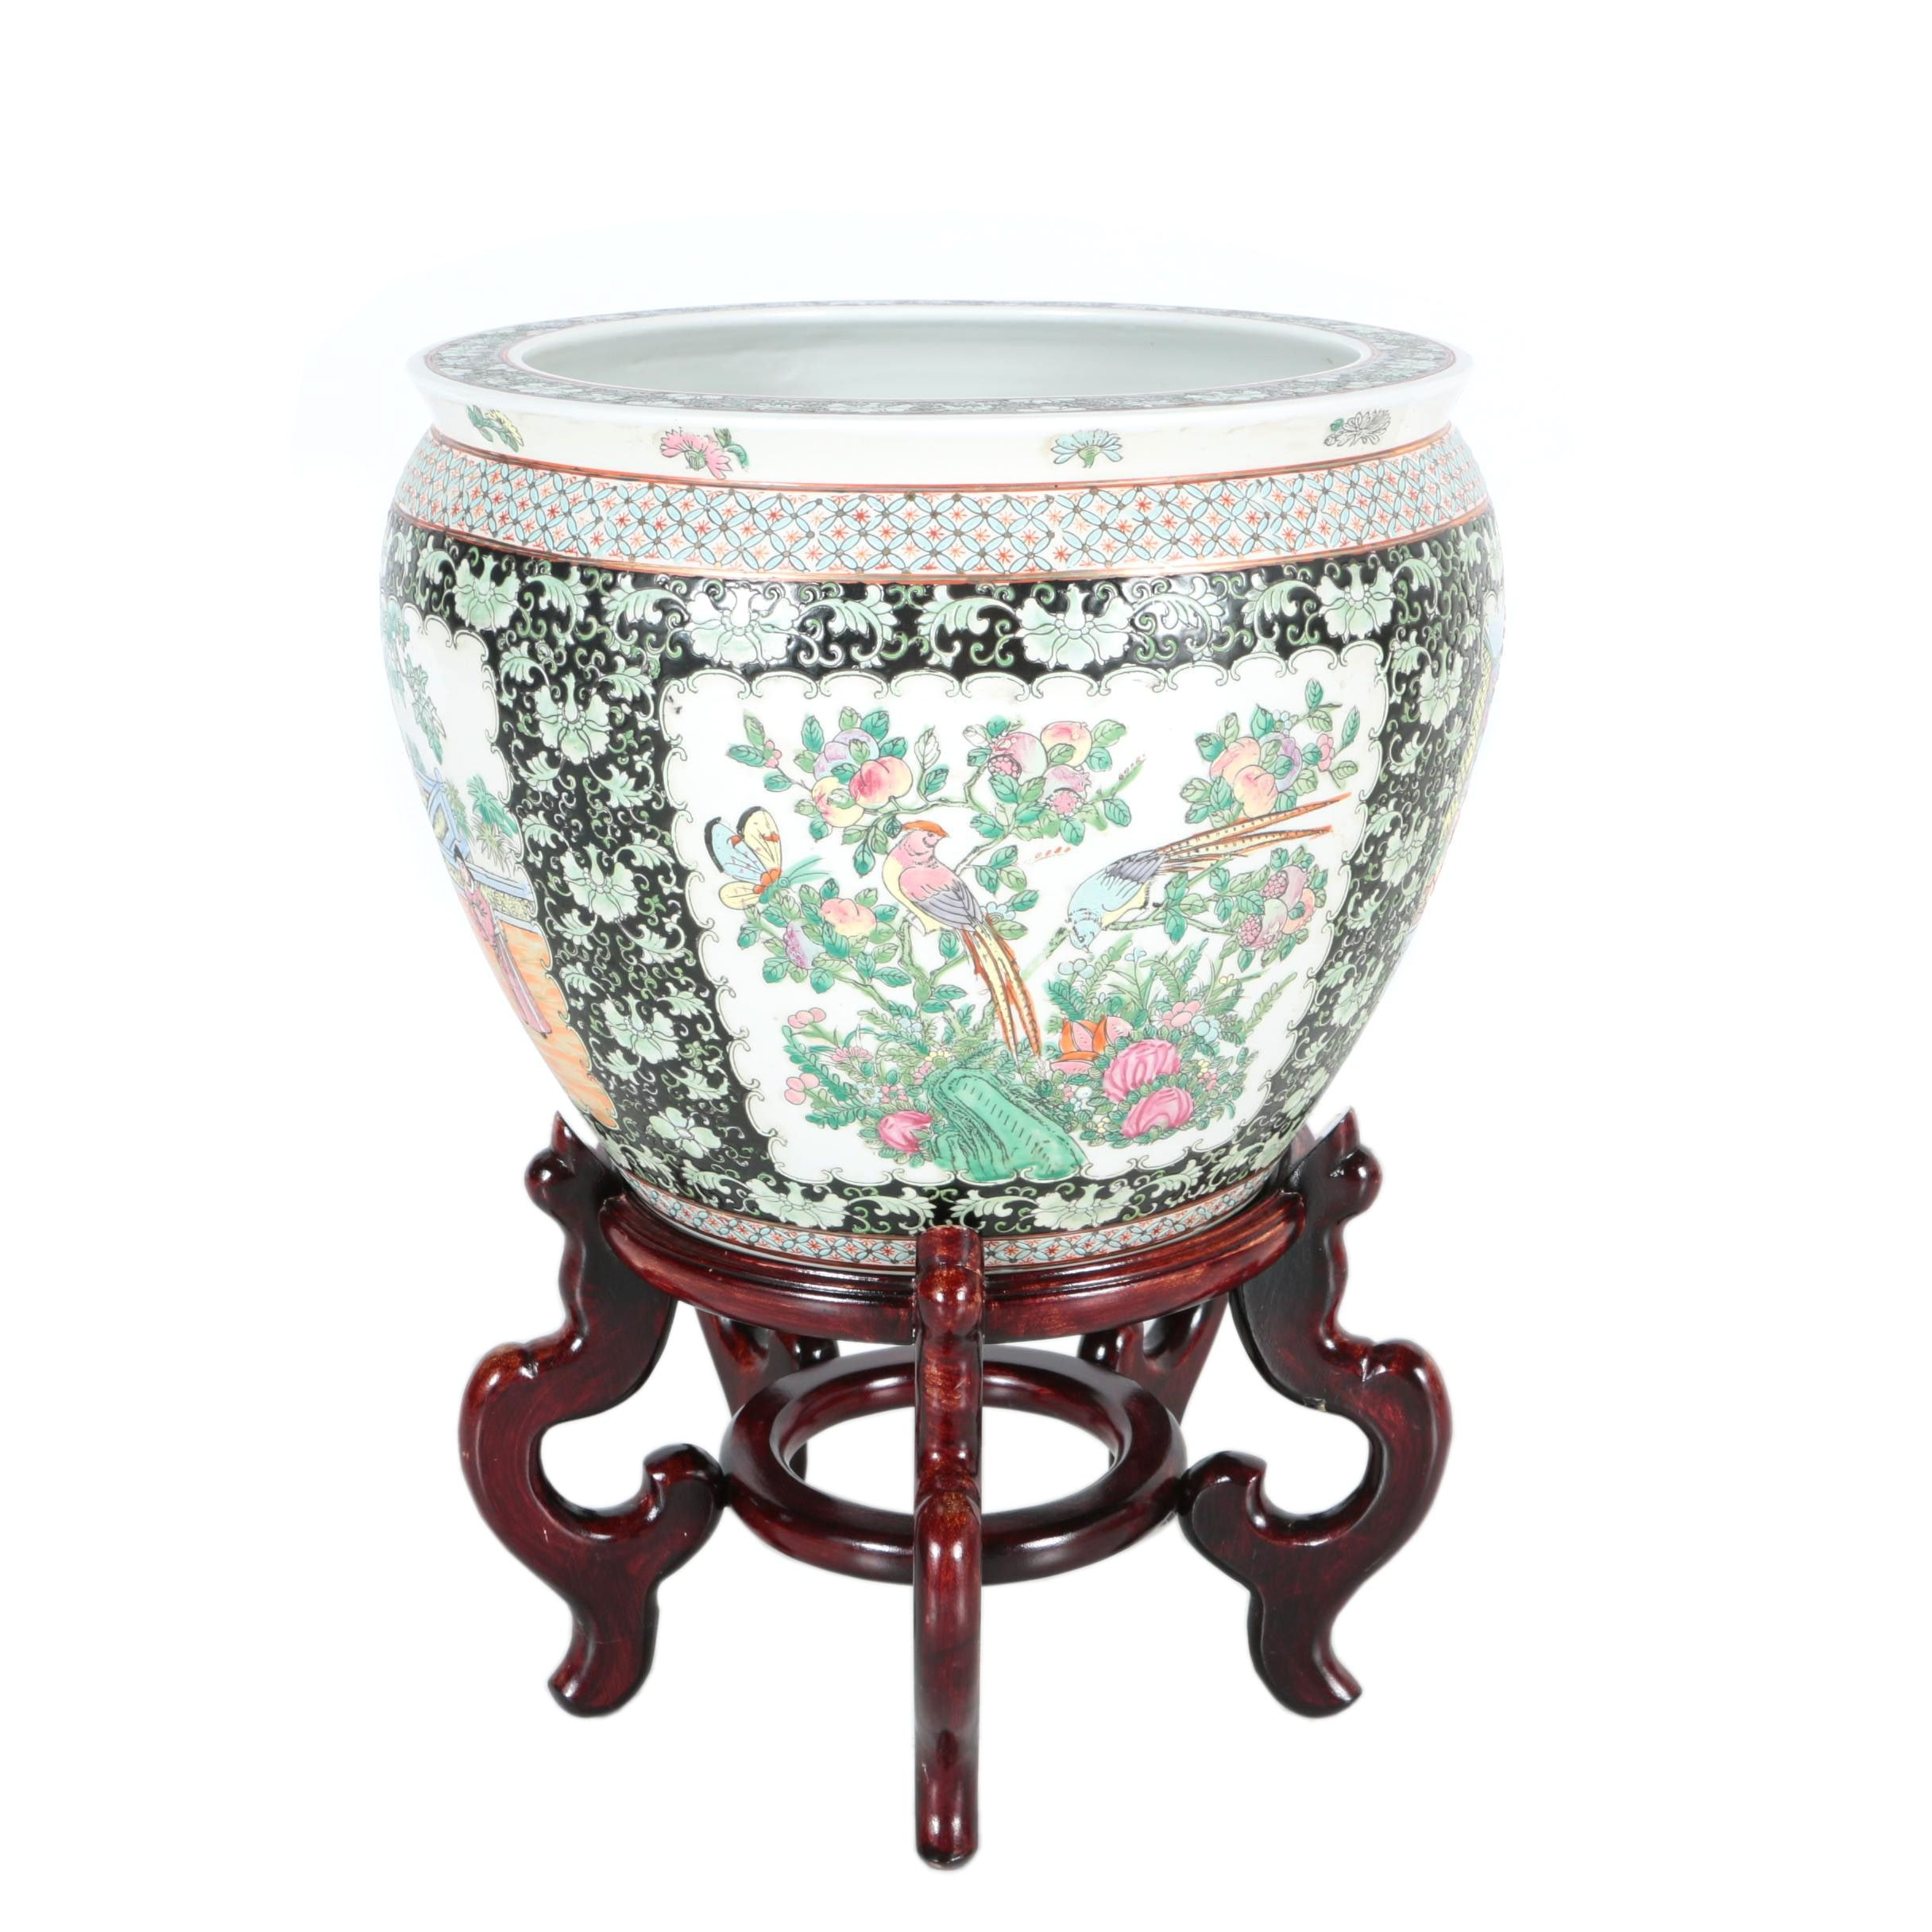 Asian Themed Ceramic Planter with Stand